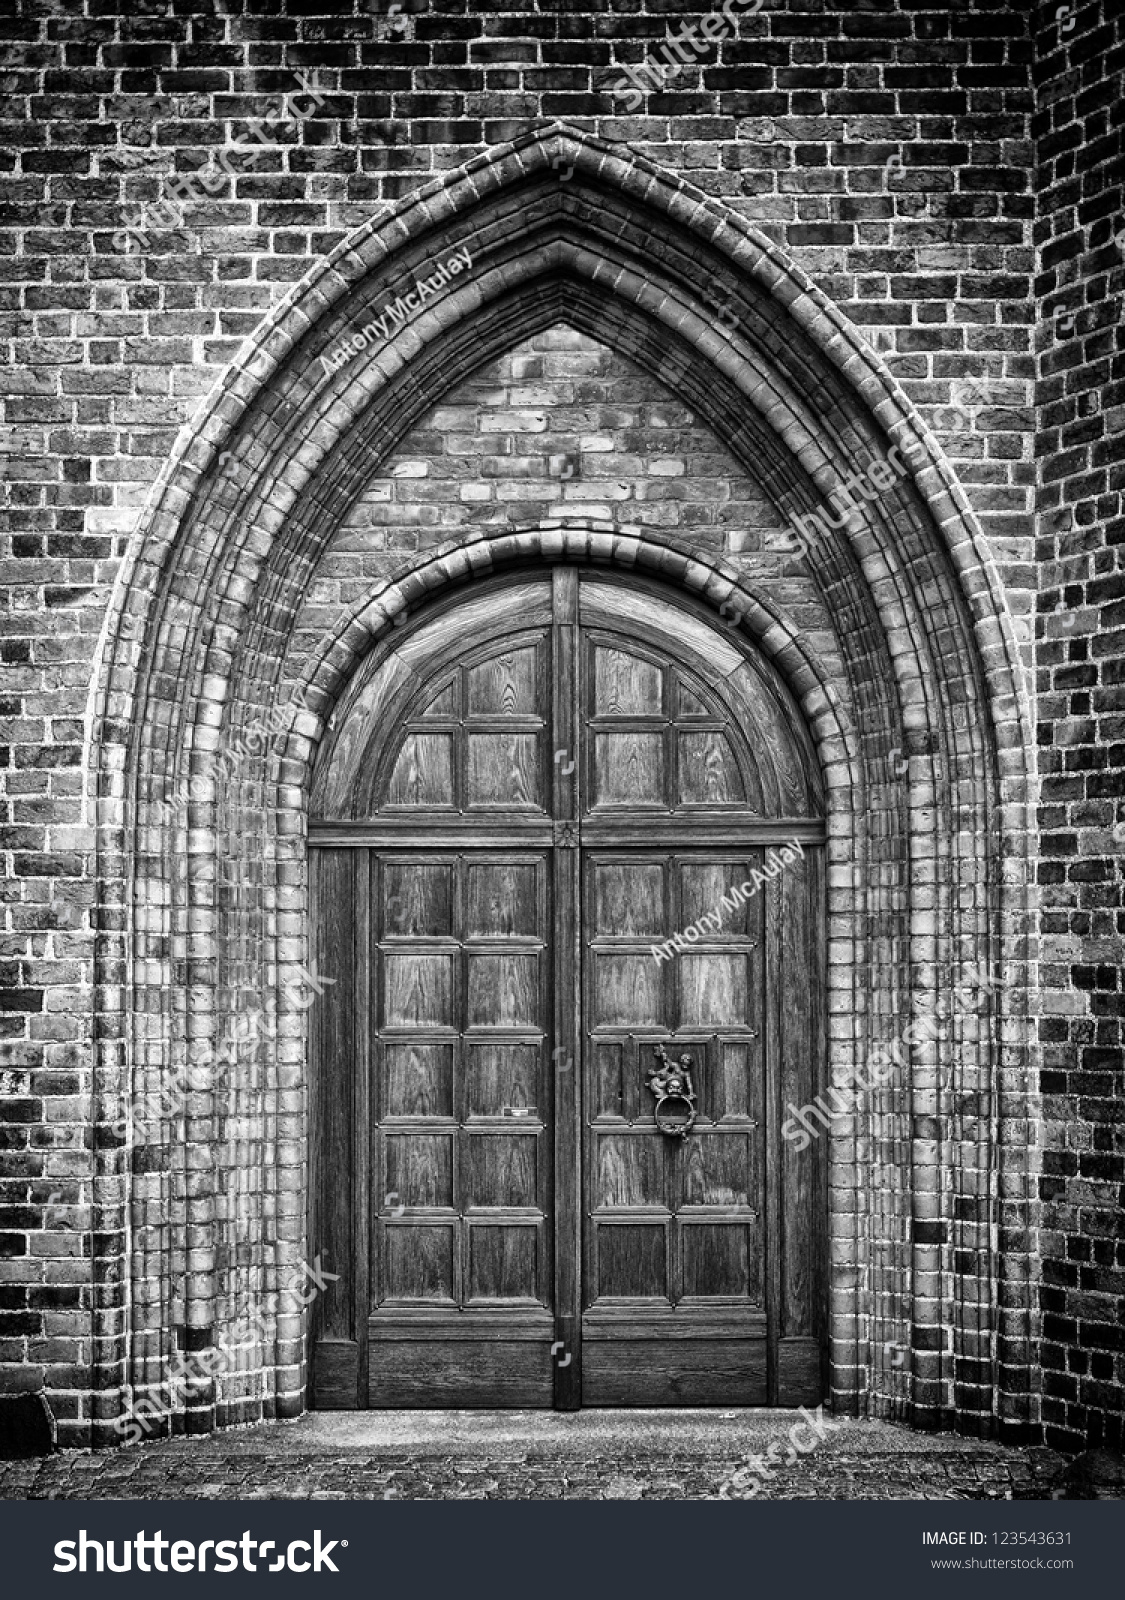 Black White Photo Arched Doorway Gothic Stock Photo